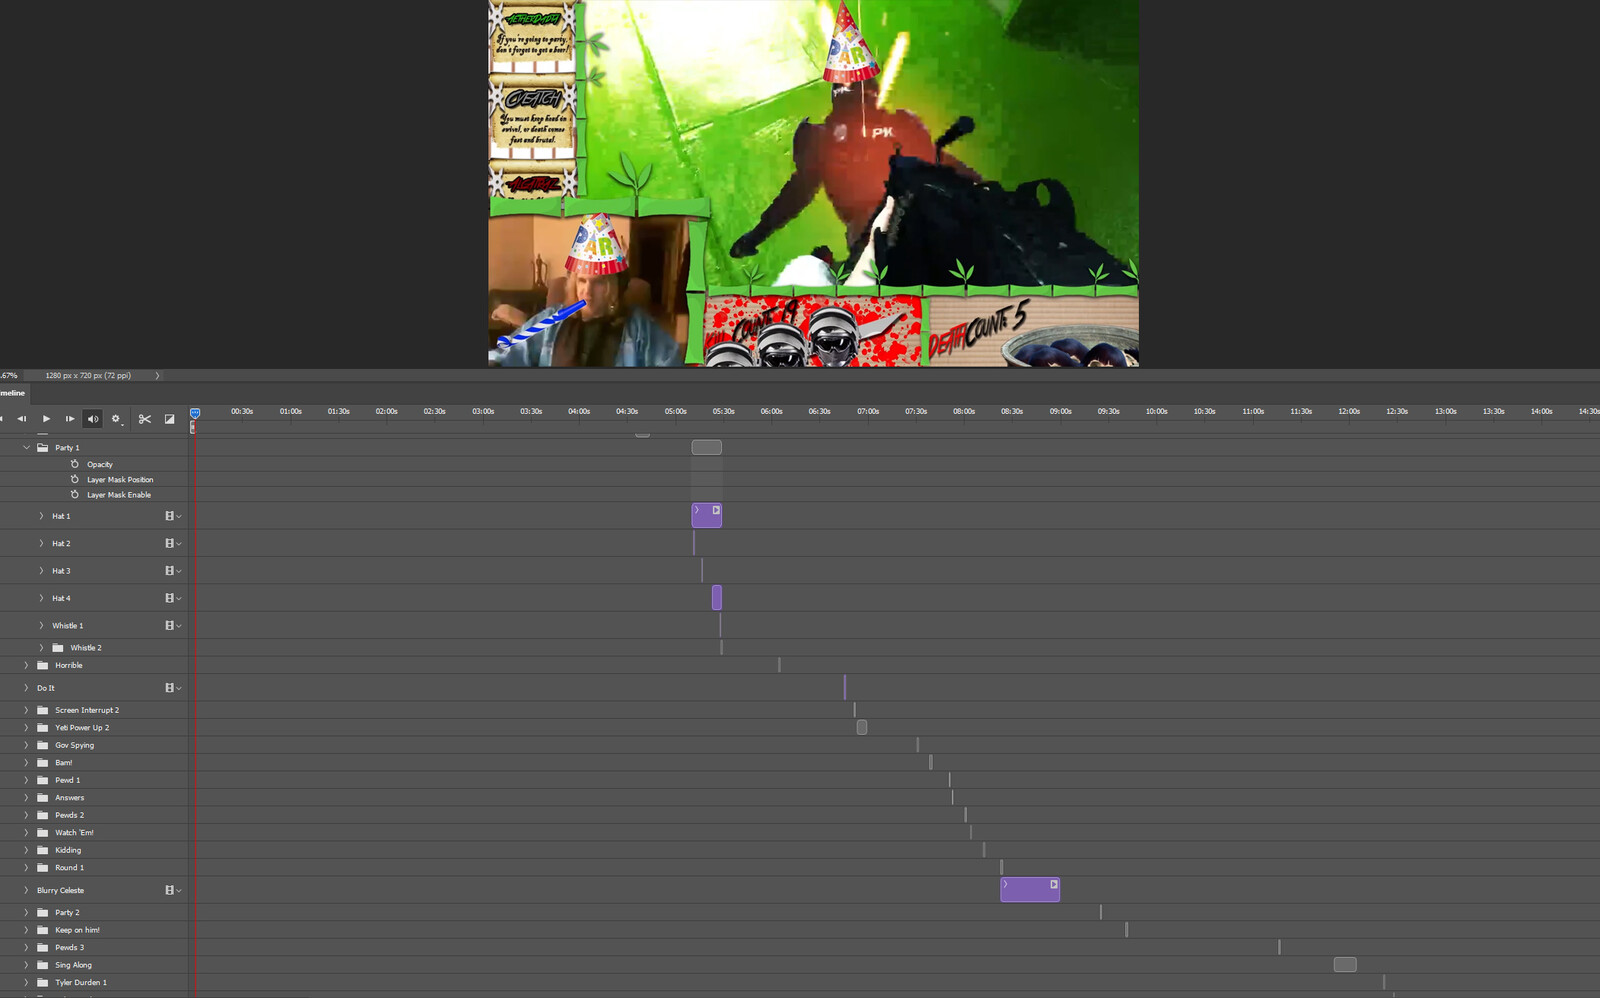 """The """"Know How to Party"""" visual effect within Photoshop video editor"""